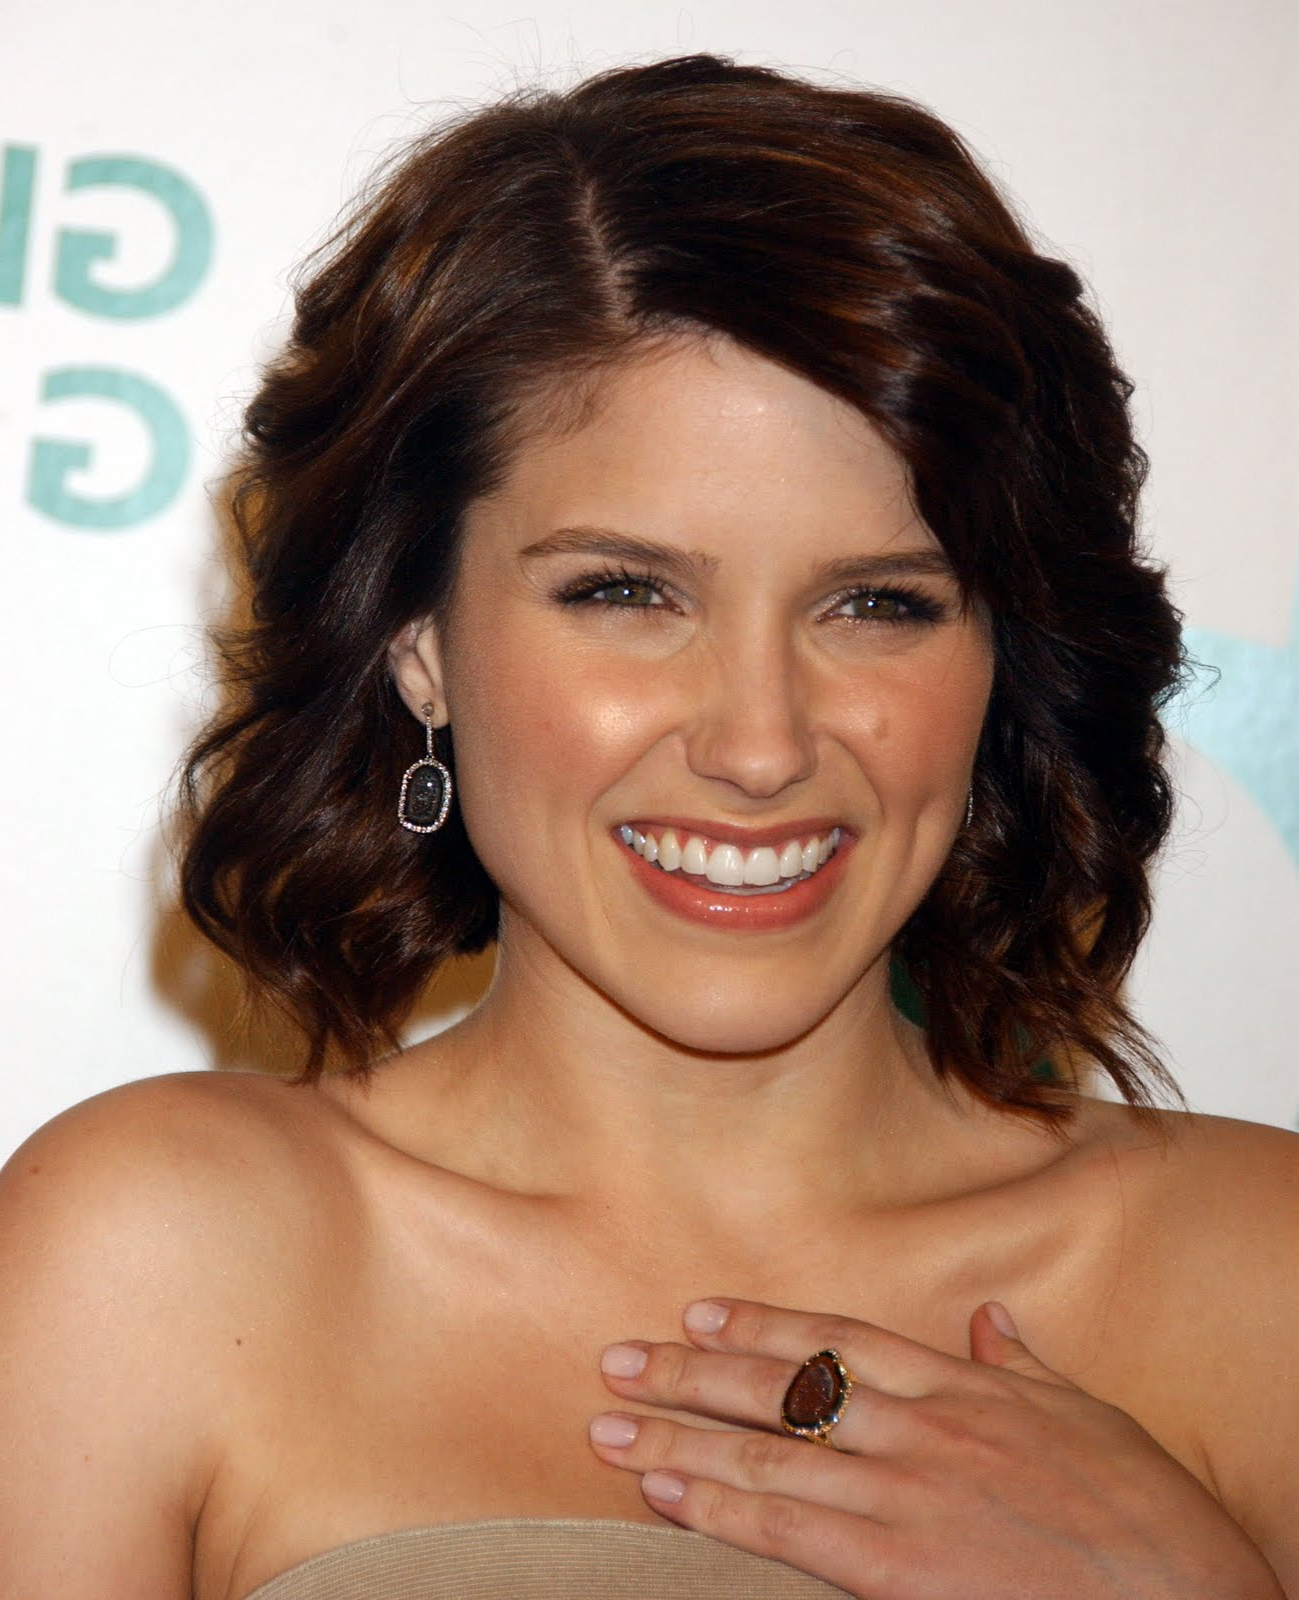 Hairstyles, Braids And Hair Style Ideas: Sophia Bush Hairstyles 2009 Within Sophia Bush Short Hairstyles (View 6 of 25)